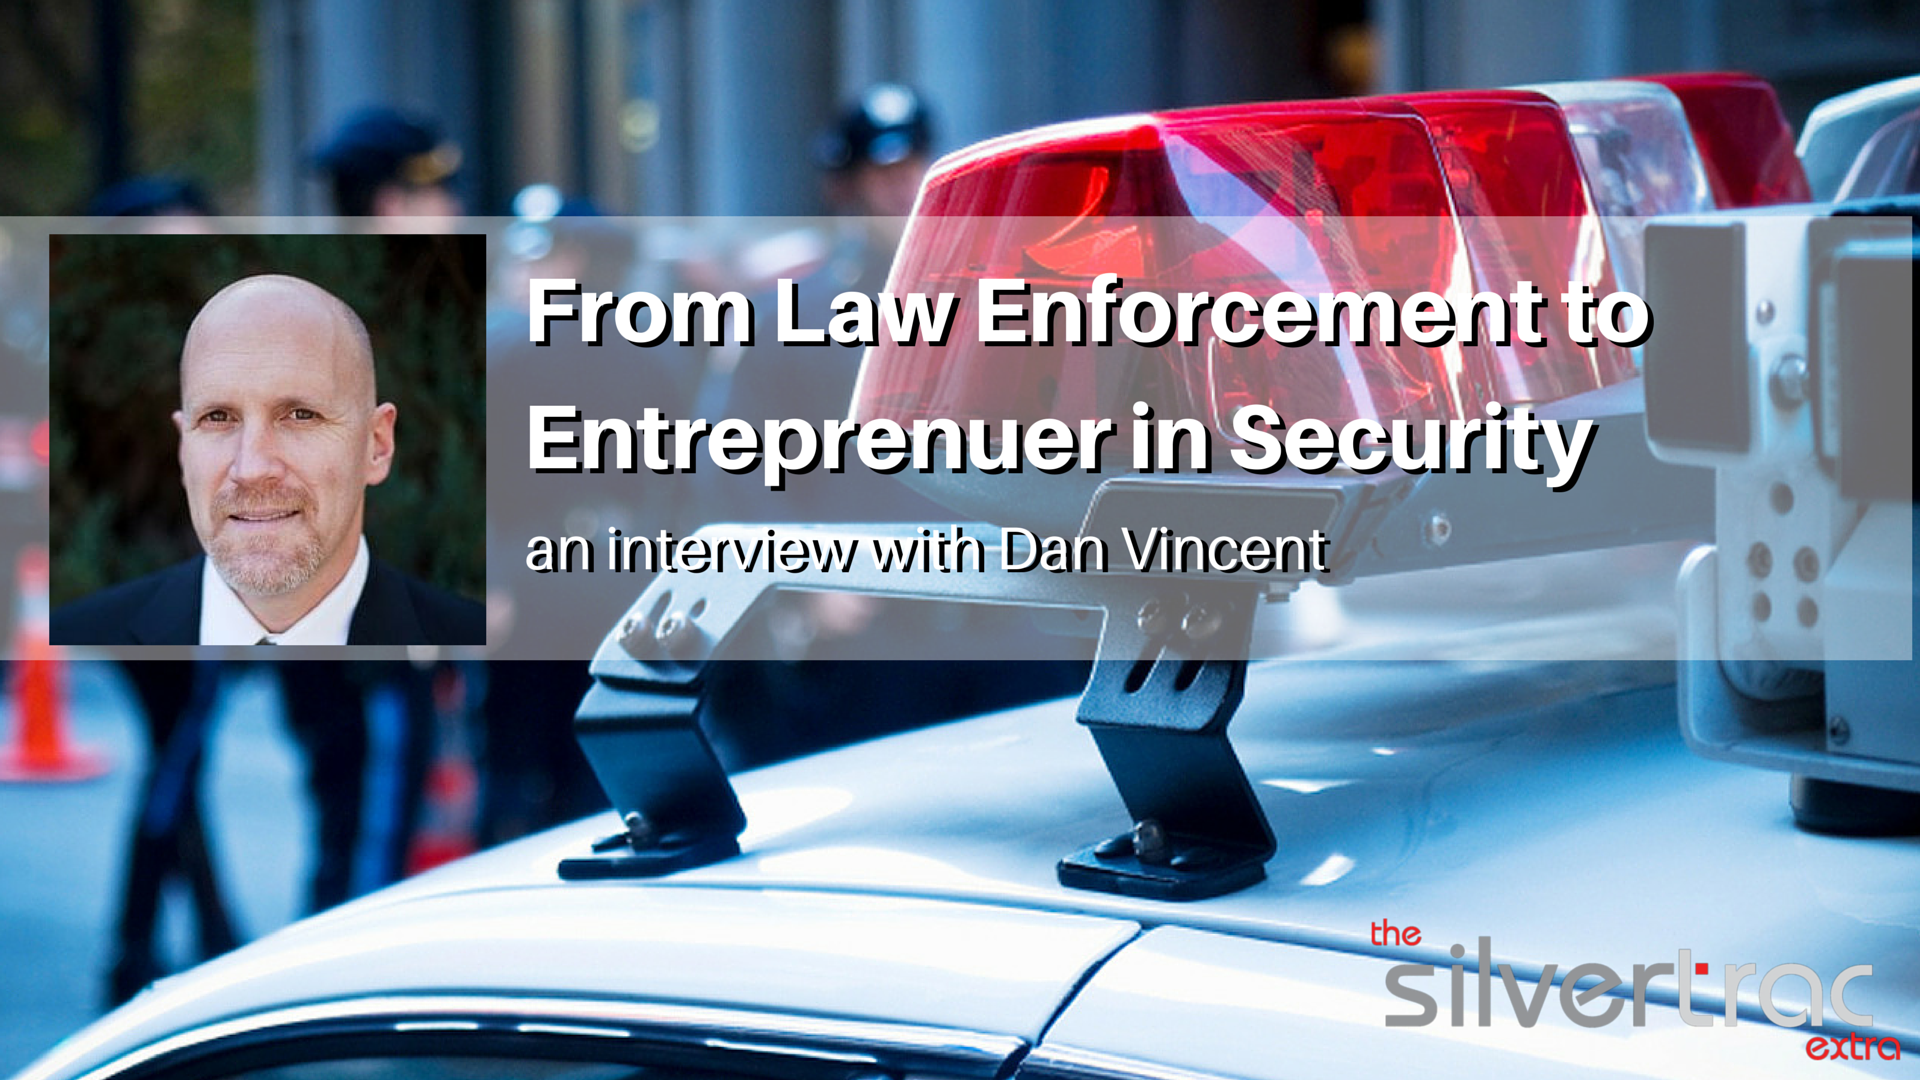 Law Enforcement to Security Entreprenuer